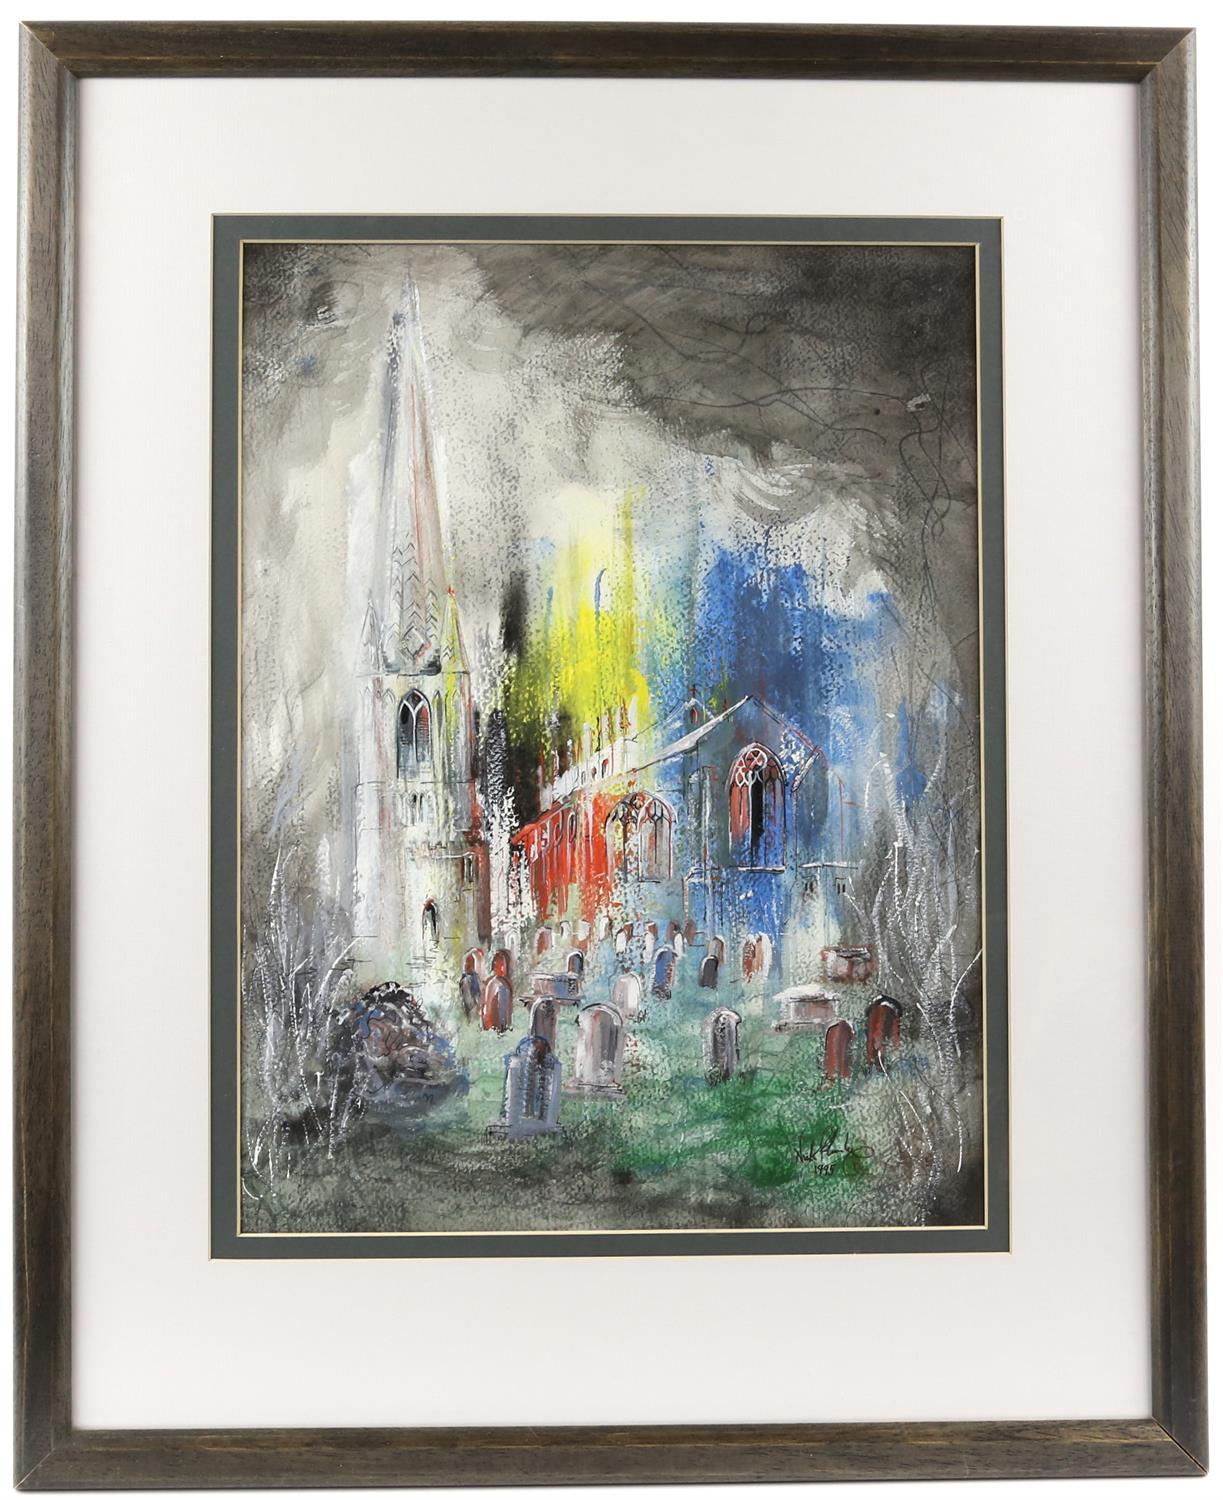 Nick Plumley (British, b. 1940), church yard scene, signed and dated 1995, gouache, 44cm x 33cm, - Image 2 of 4